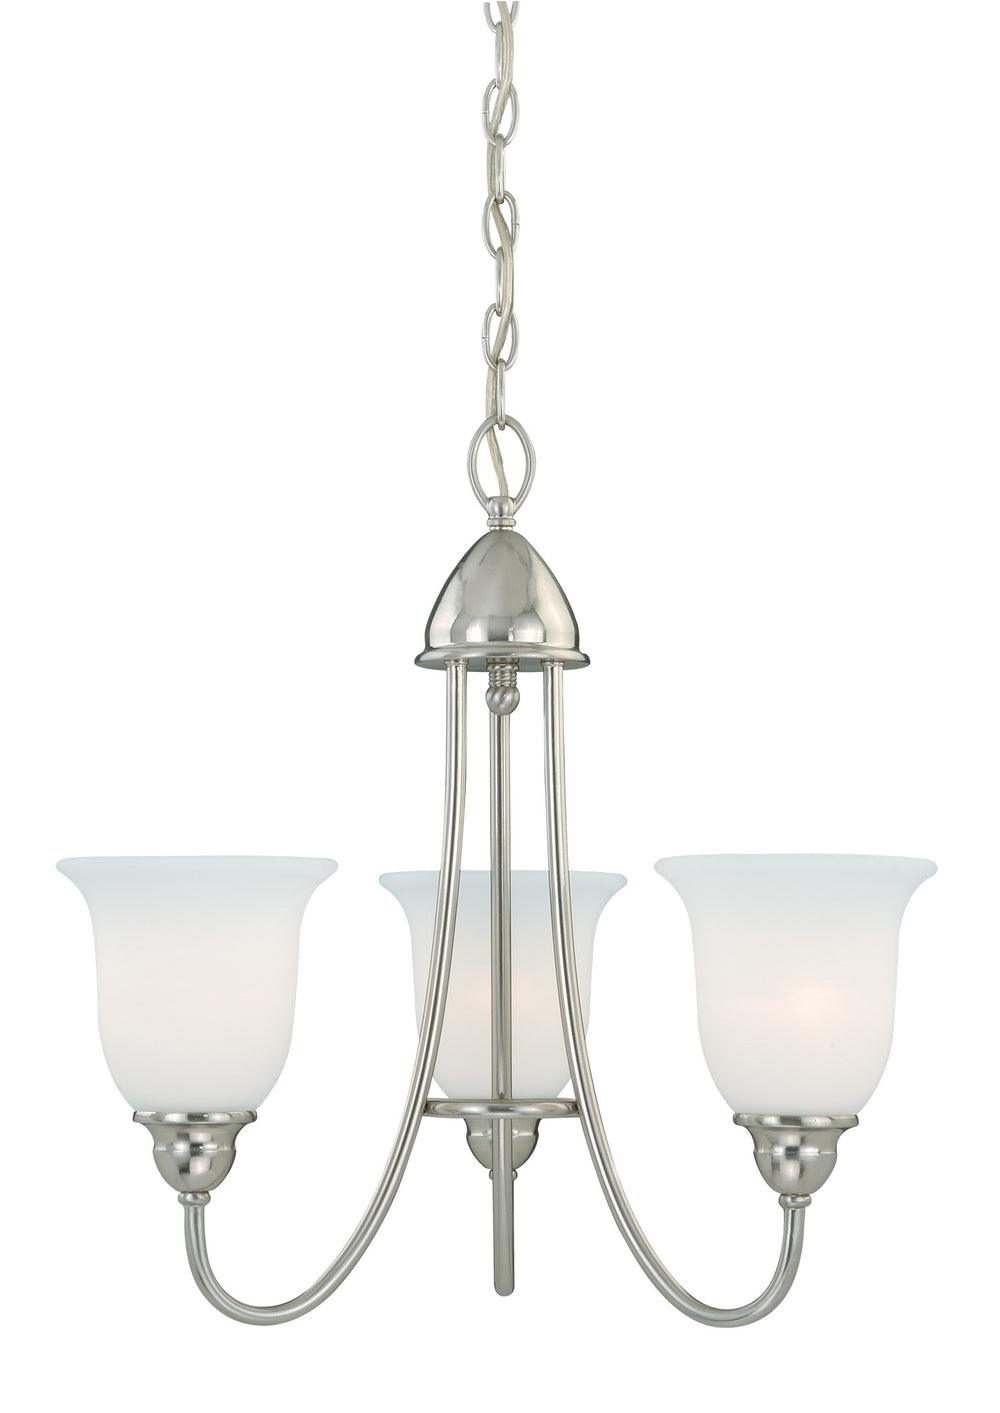 Buy H0067 Vaxcel Concord 3L Chandelier Satin Nickel from LightingOriginals.ca